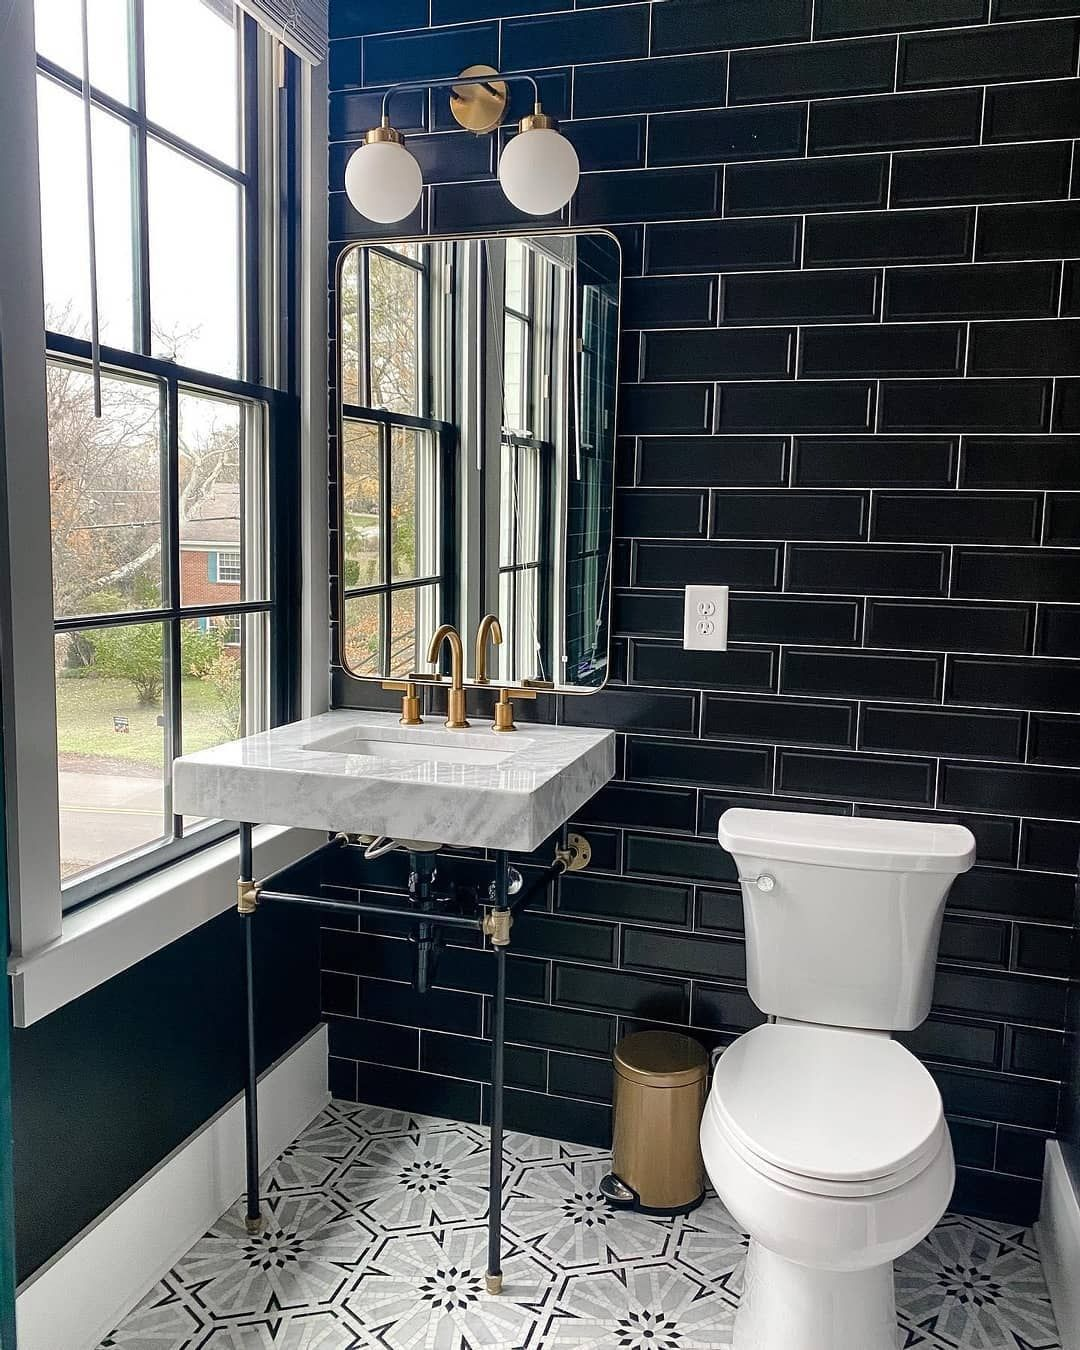 Don T Be Afraid To Go Bold In 2021 The Tile Shop Black Subway Tiles Bathroom Trends